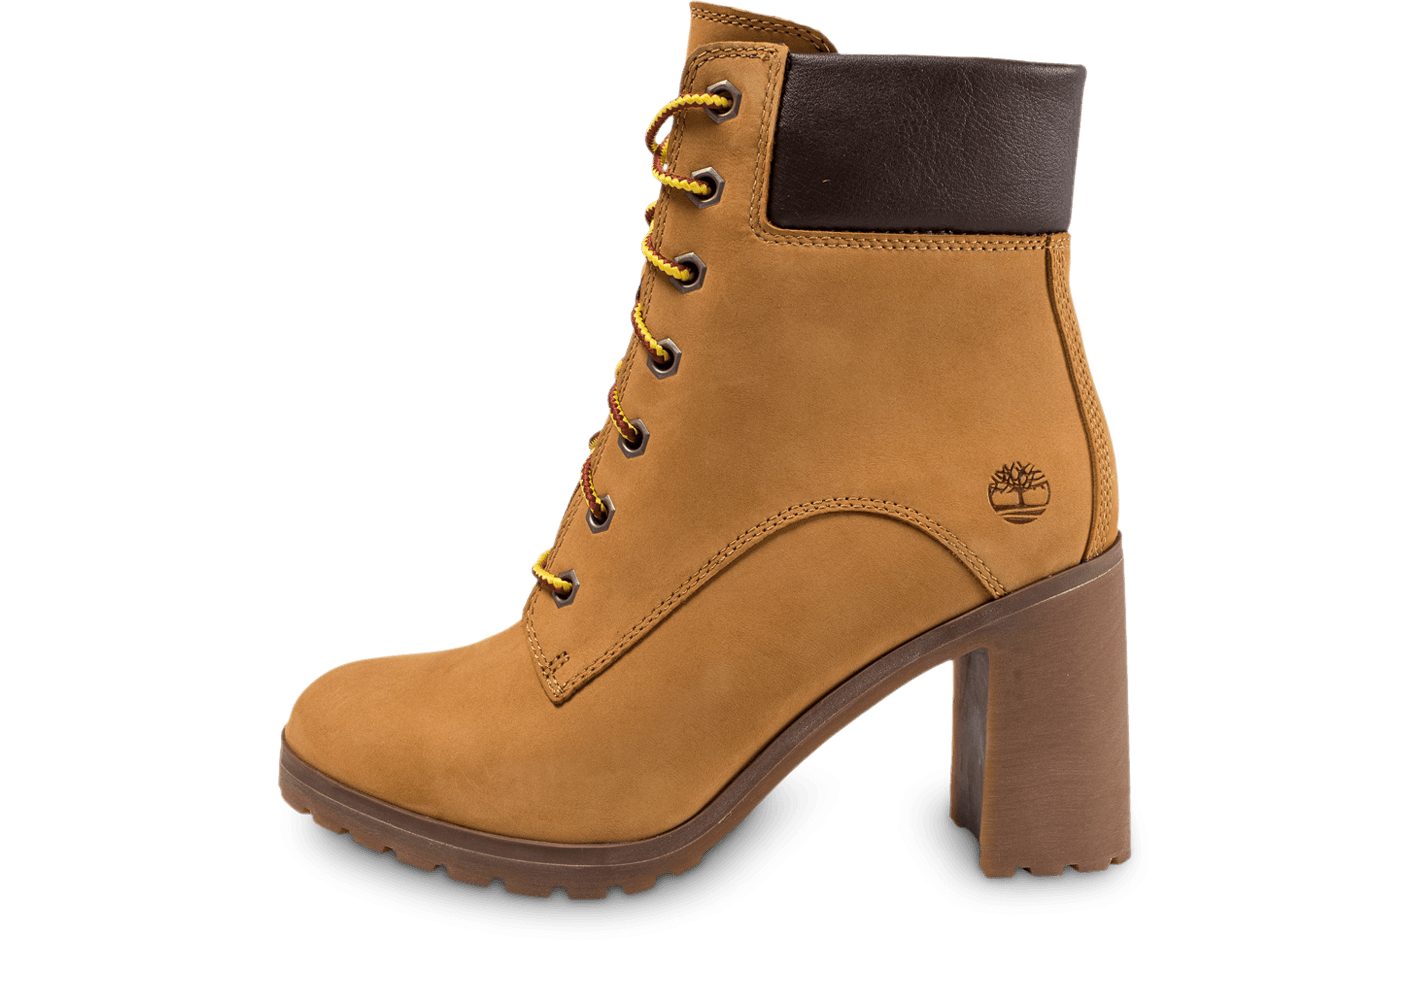 botte timberland talon